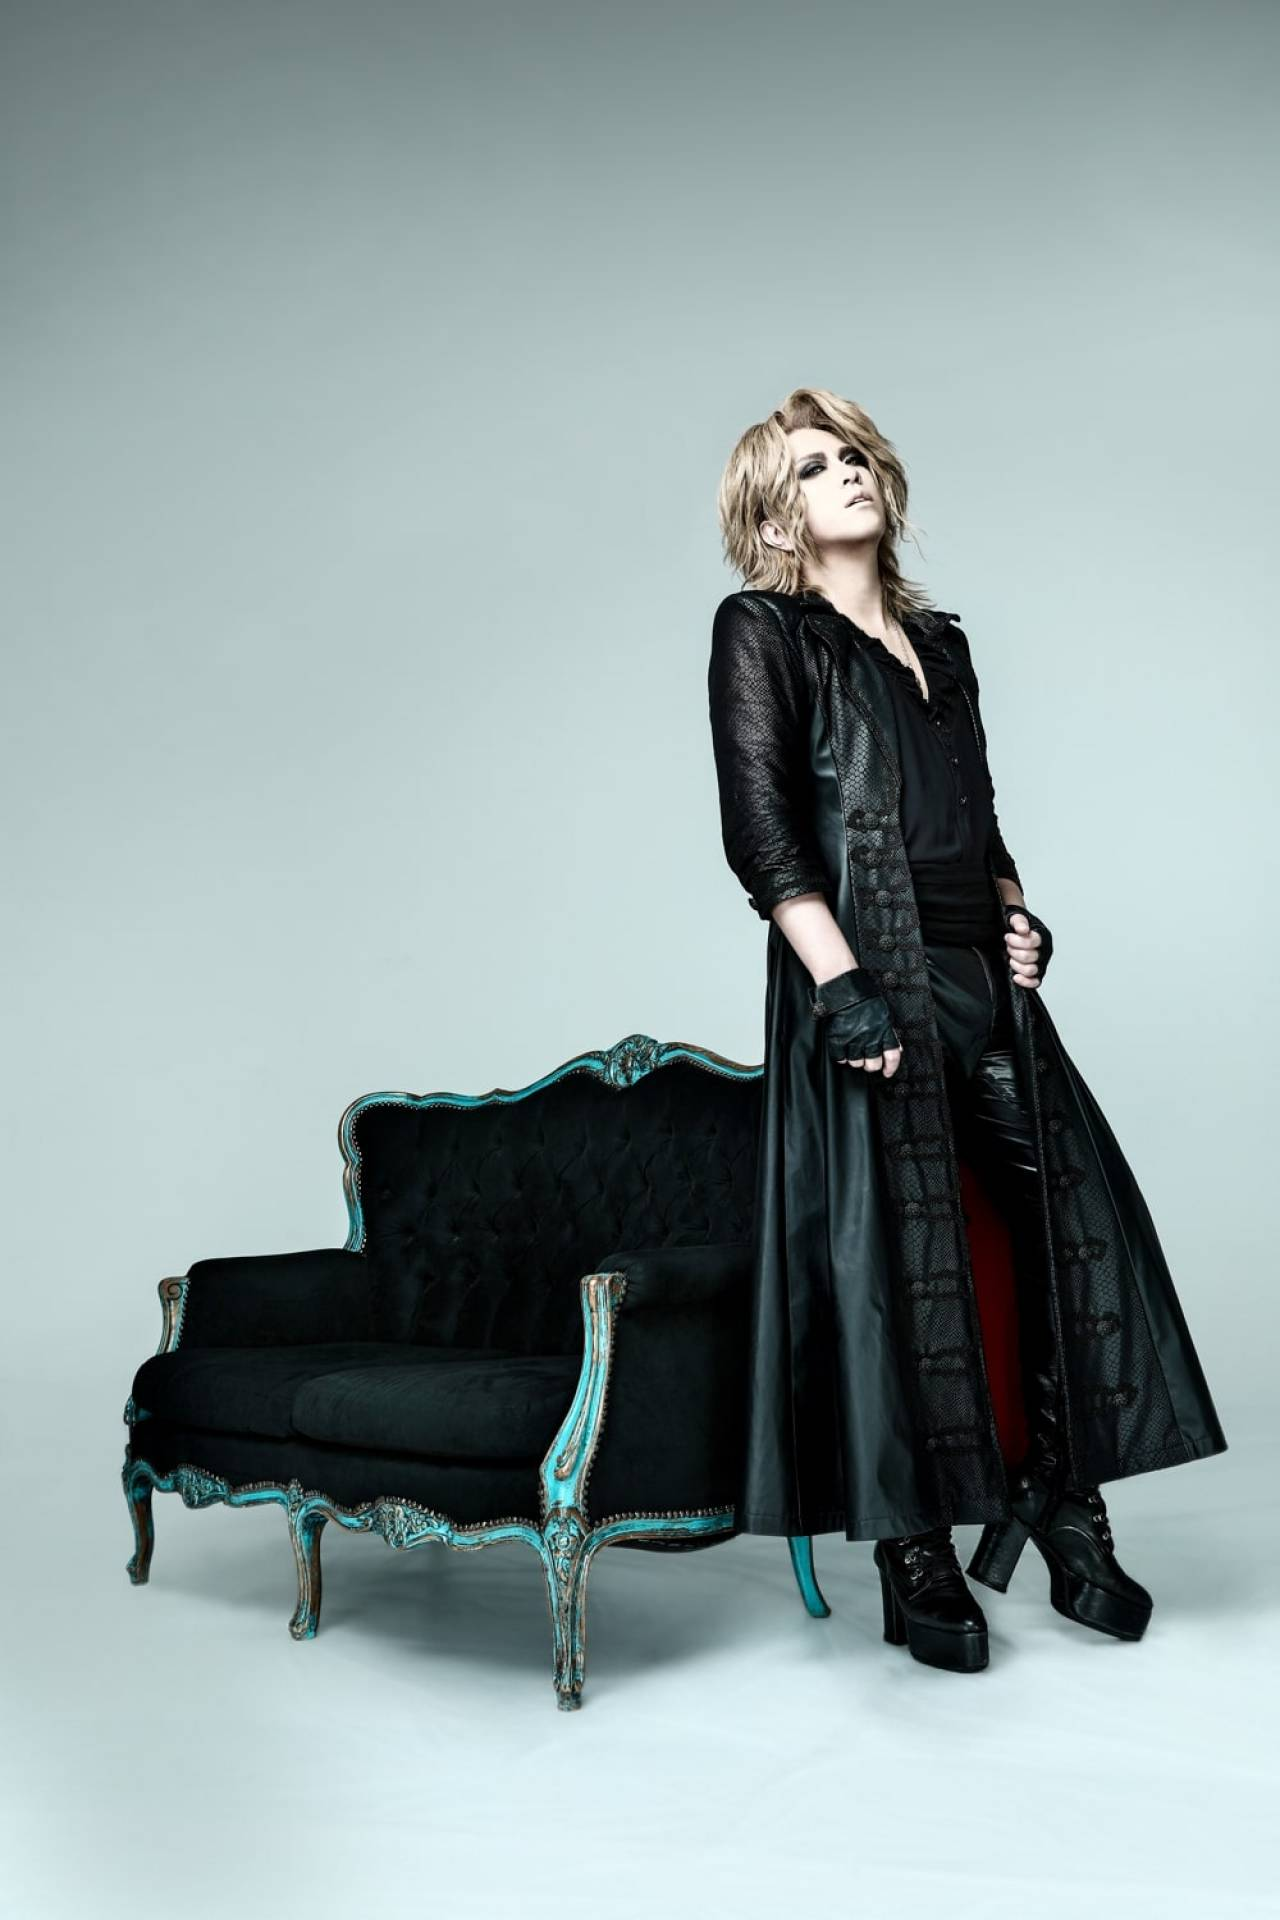 KAMIJO's new artist photo